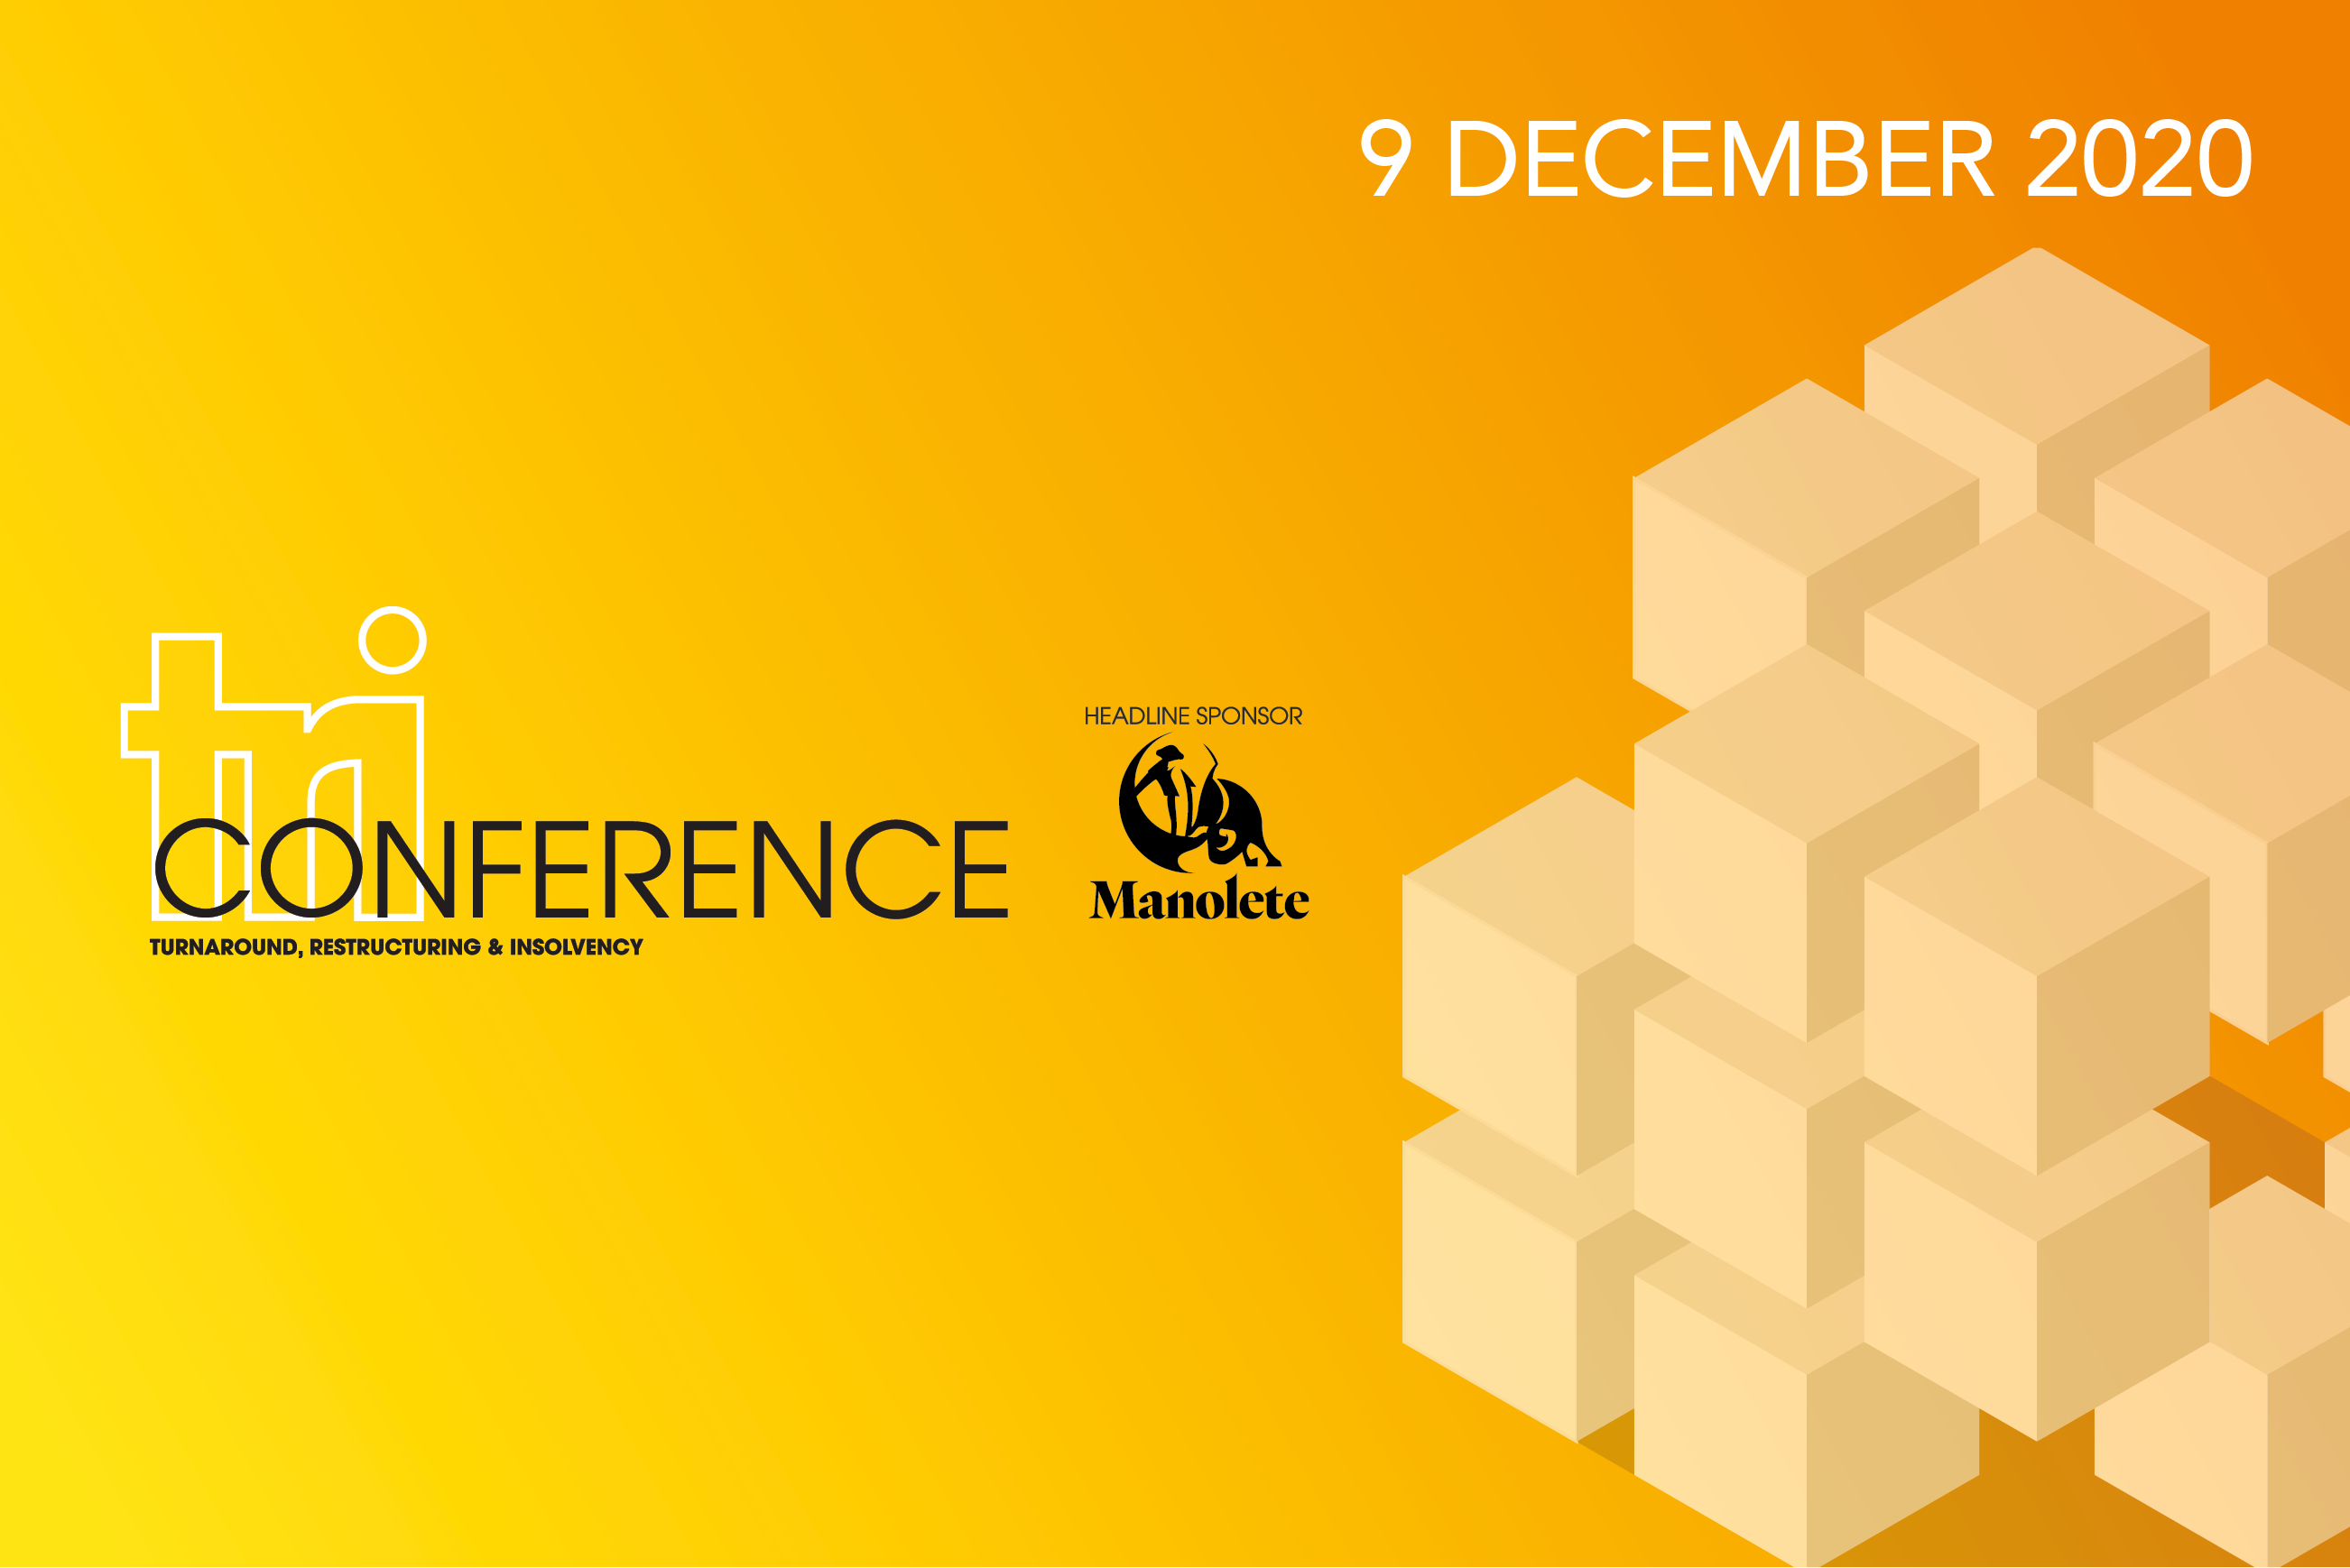 Turnaround, Restructuring & Insolvency Conference